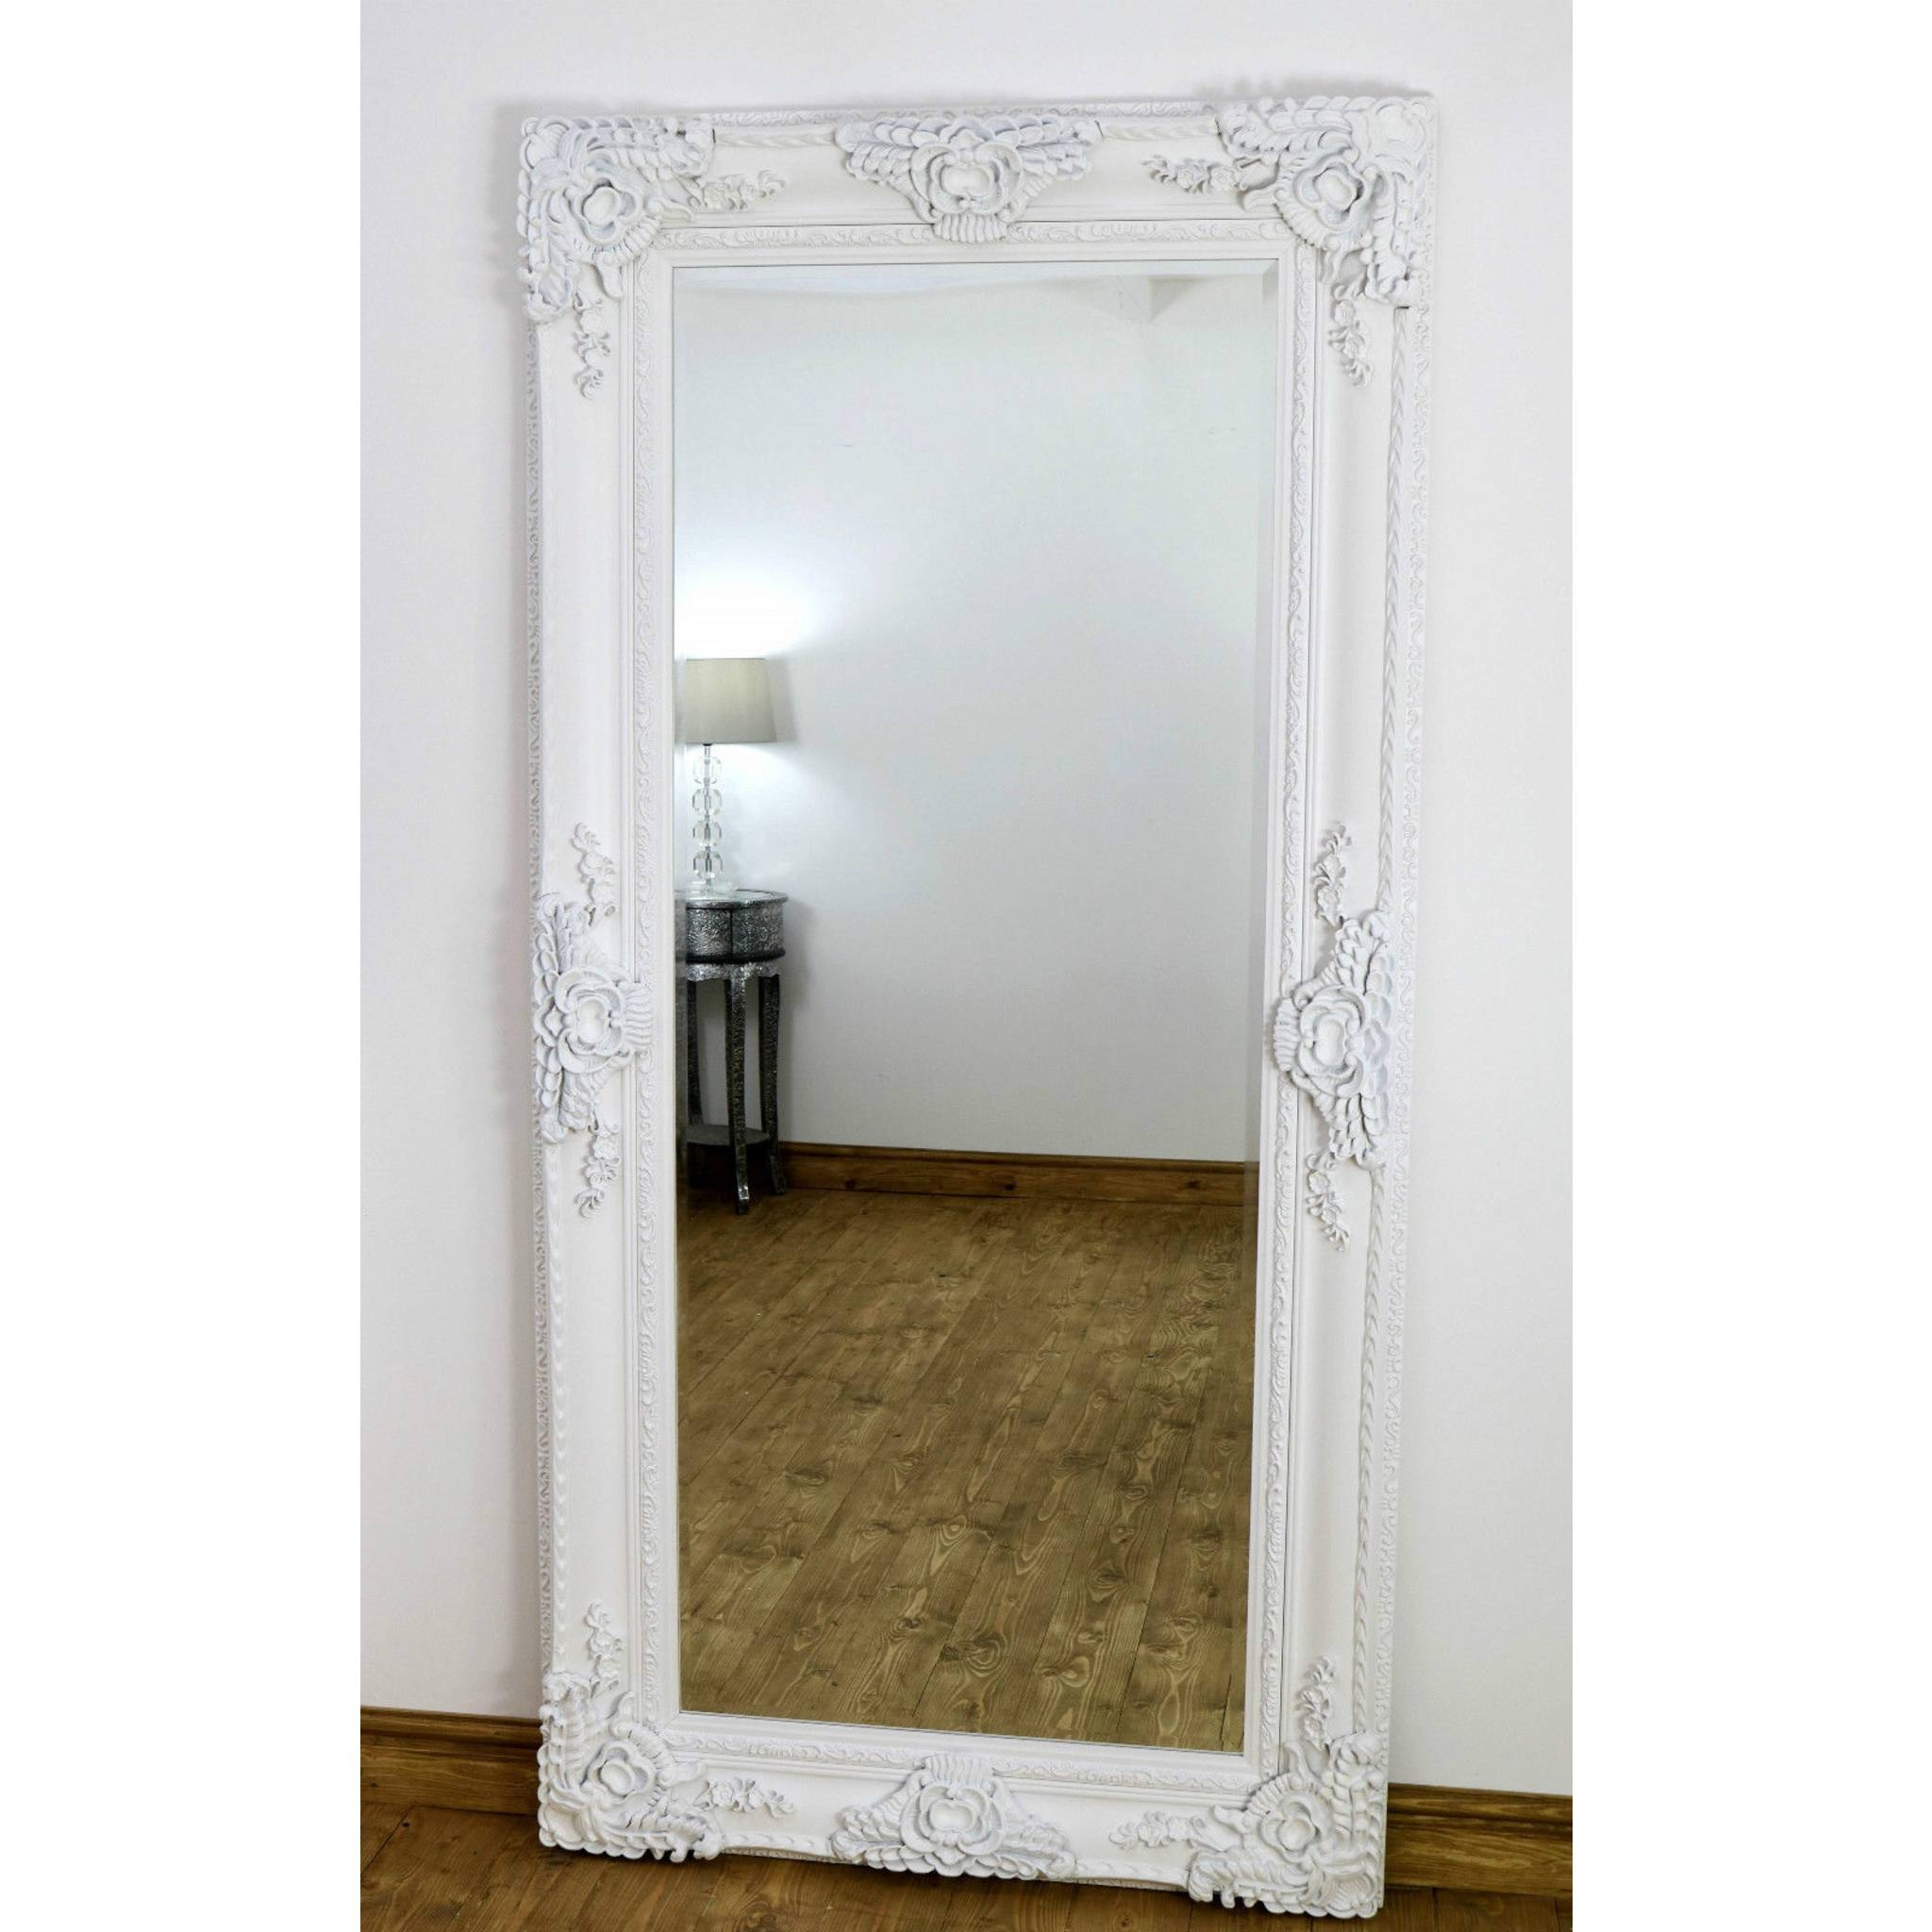 Flooring : Ornate Floor Mirror Best Large Mirrors Ideas On within Large Ornate White Mirrors (Image 12 of 25)